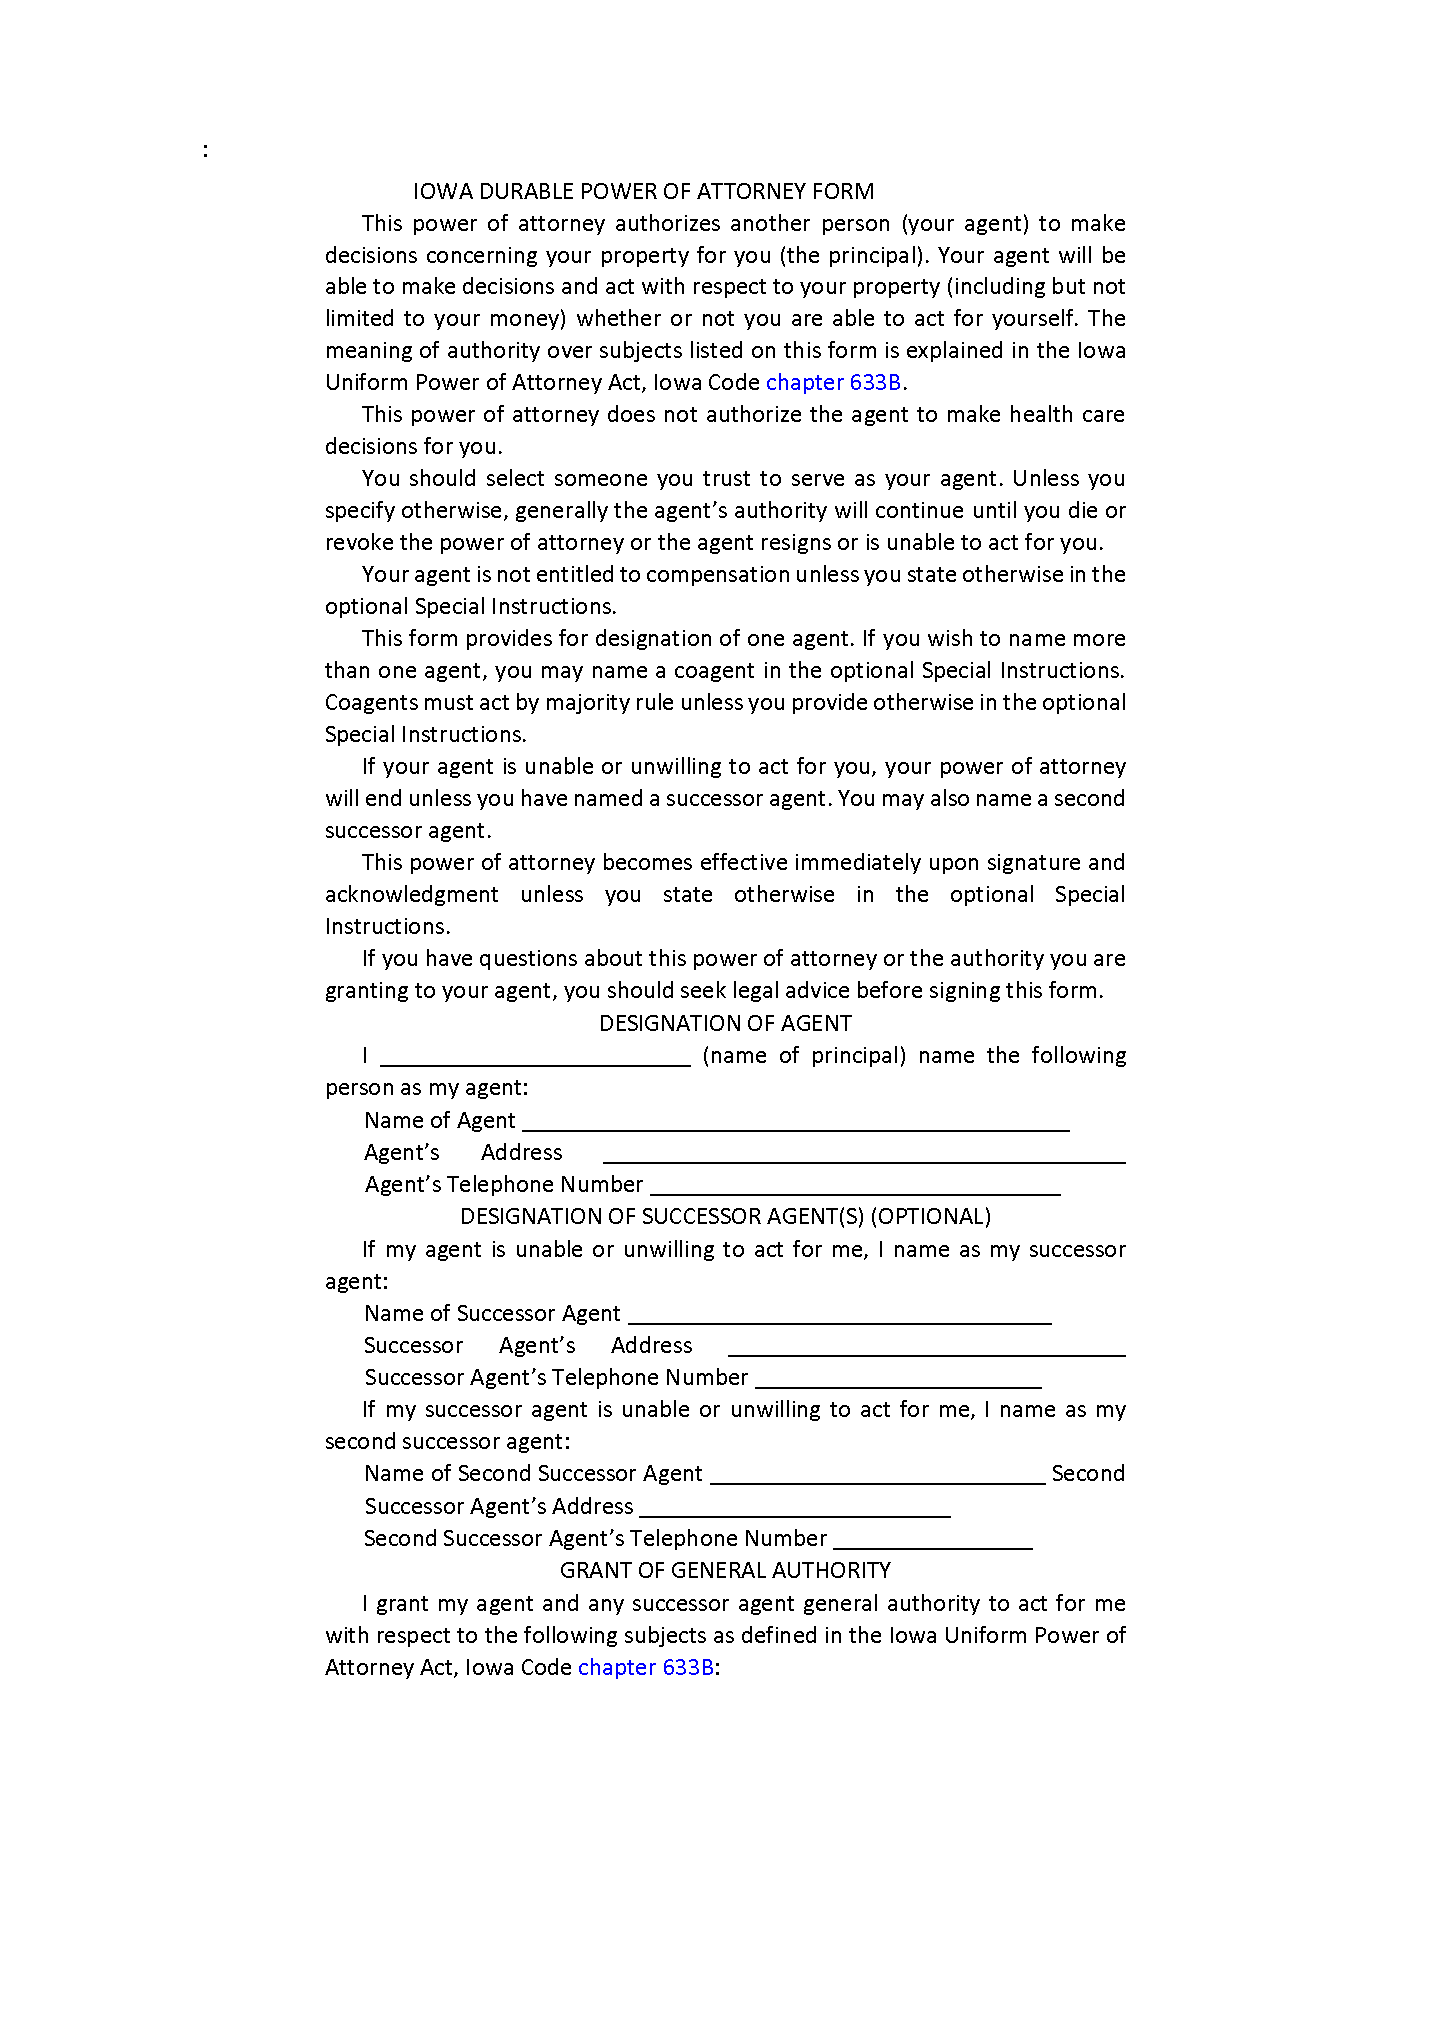 Iowa Durable Power of Attorney Form